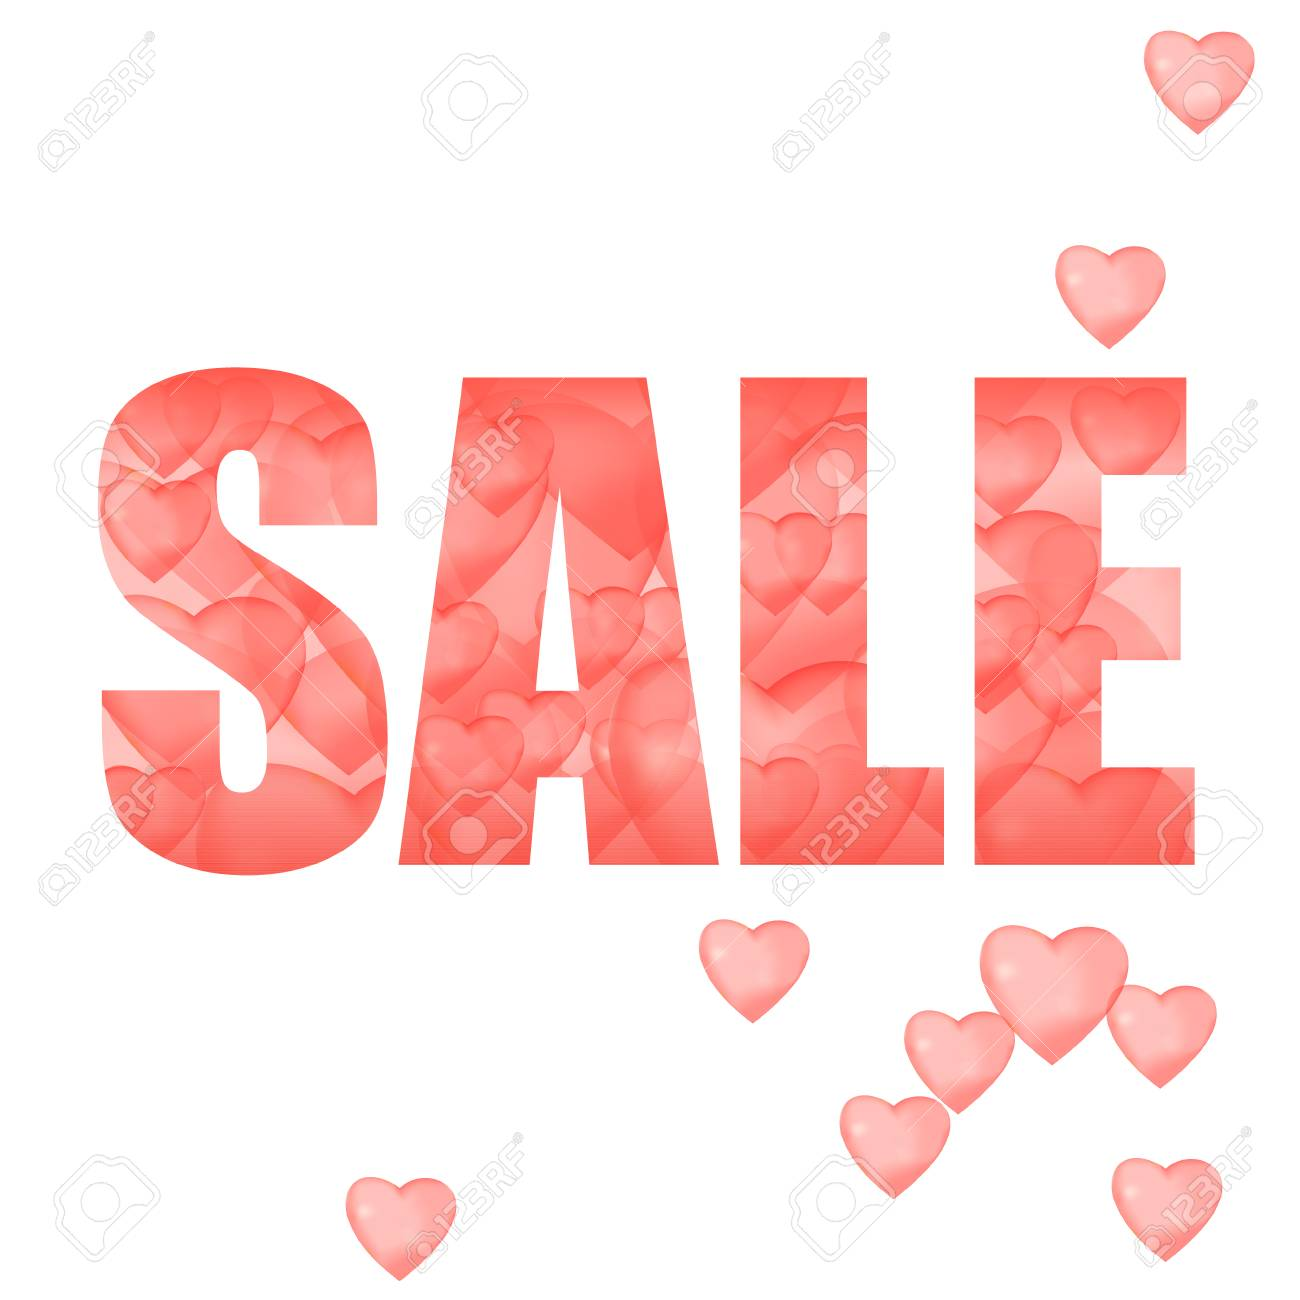 Store Banne Discount Banner About Sales And Discounts Valentine S Day Red Inflatable